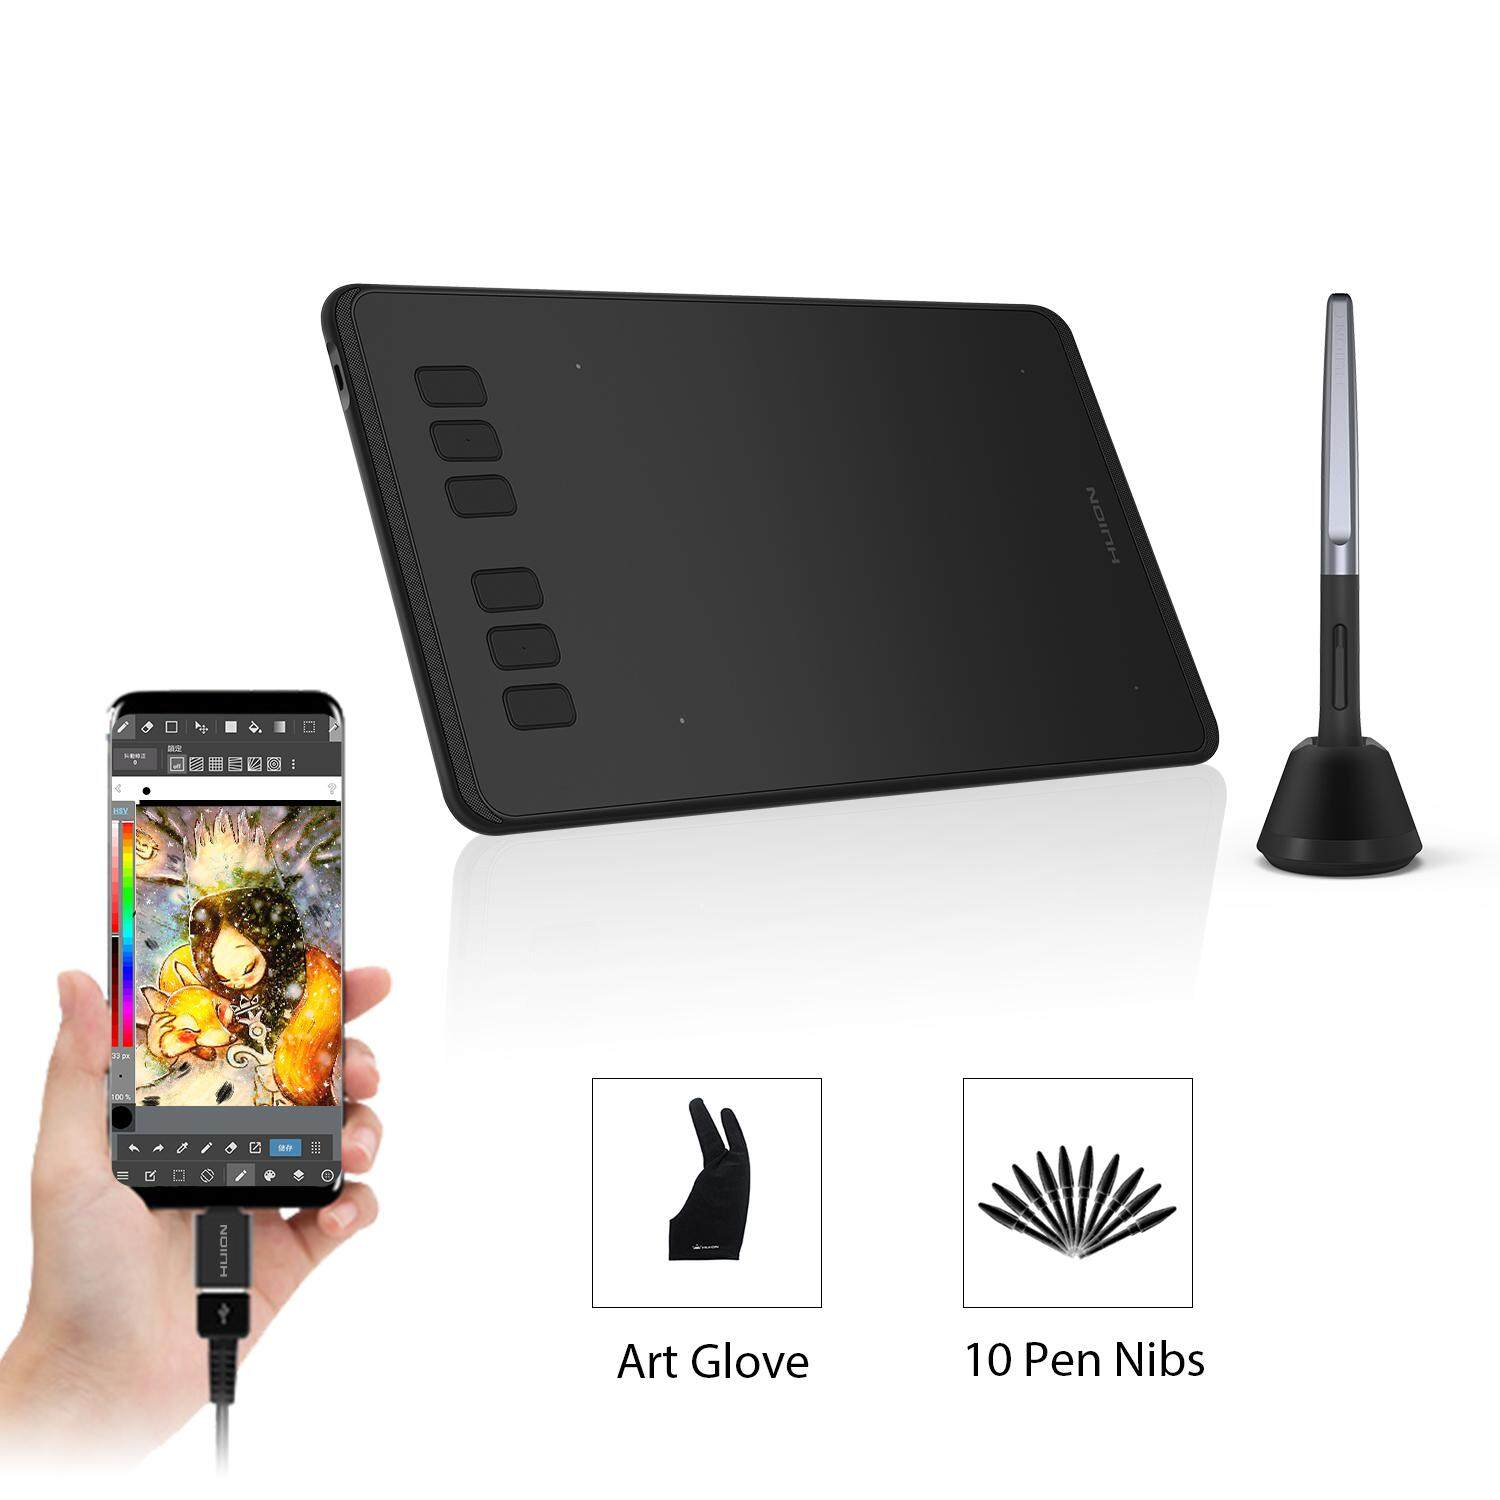 Huion H640P Graphics Drawing Tablet with 6 Shortcut Keys, Battery-Free  Stylus, 8192 Pressure Sensitivity, Compatible with Mac, PC or Android Mobile